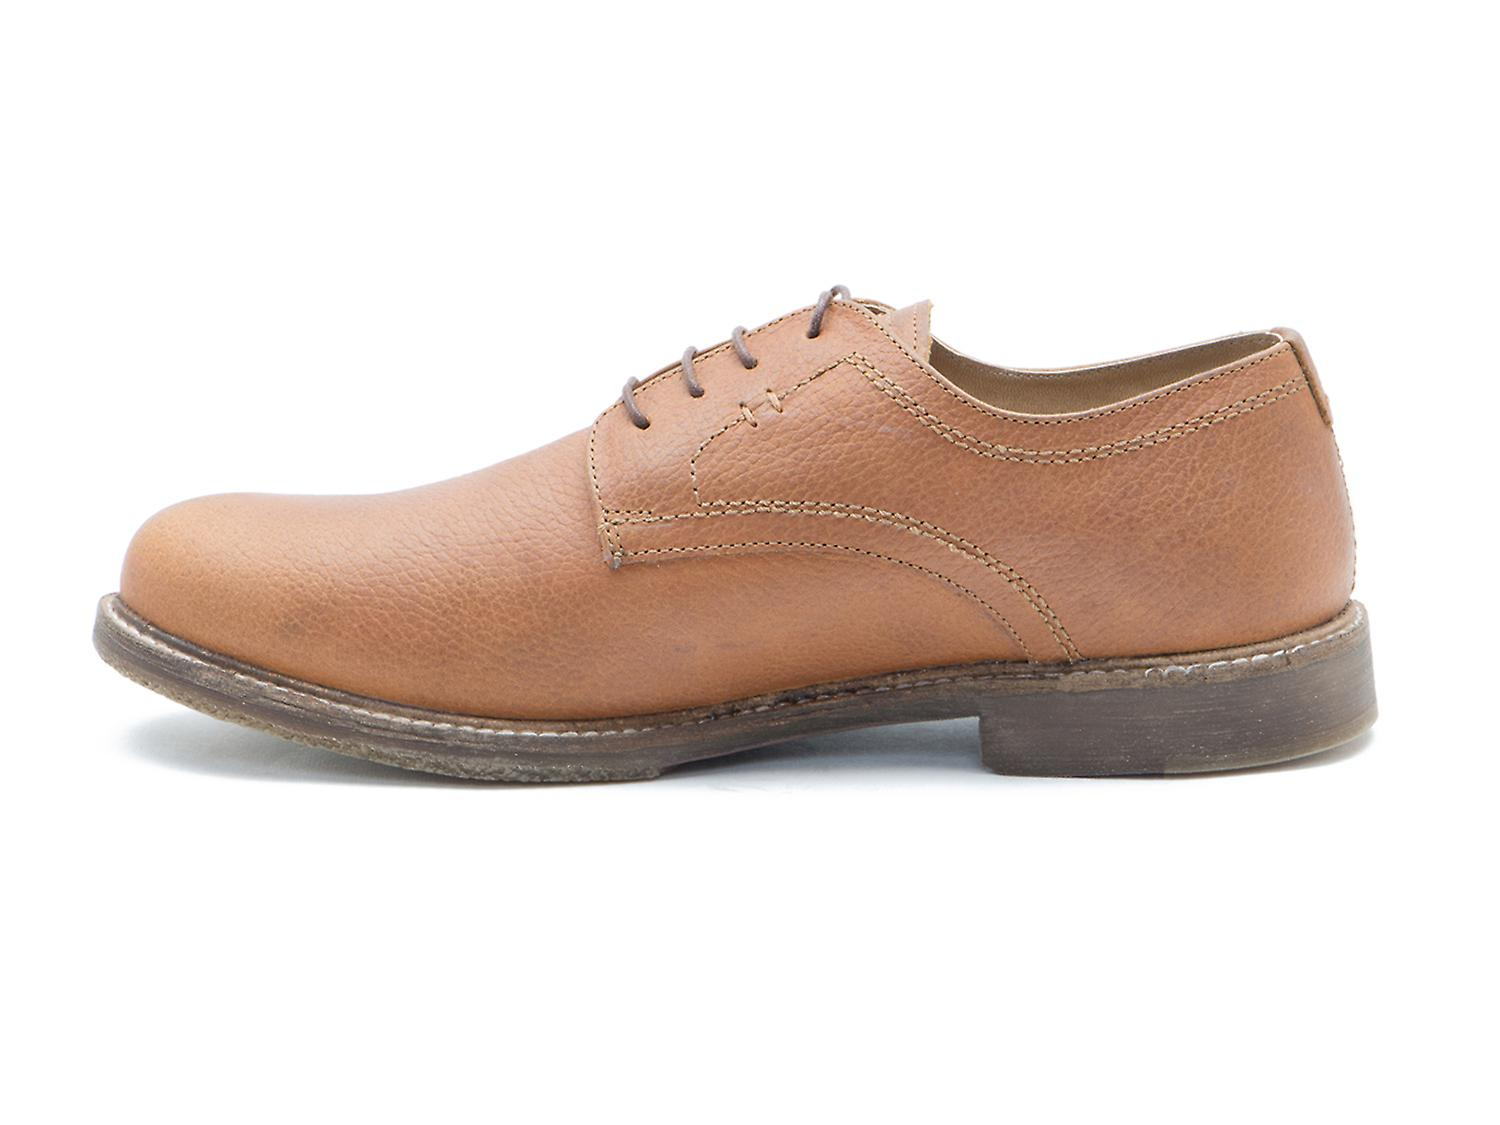 Red Tape Marlow Tan Milled Leather Formal Mens Derby Shoes